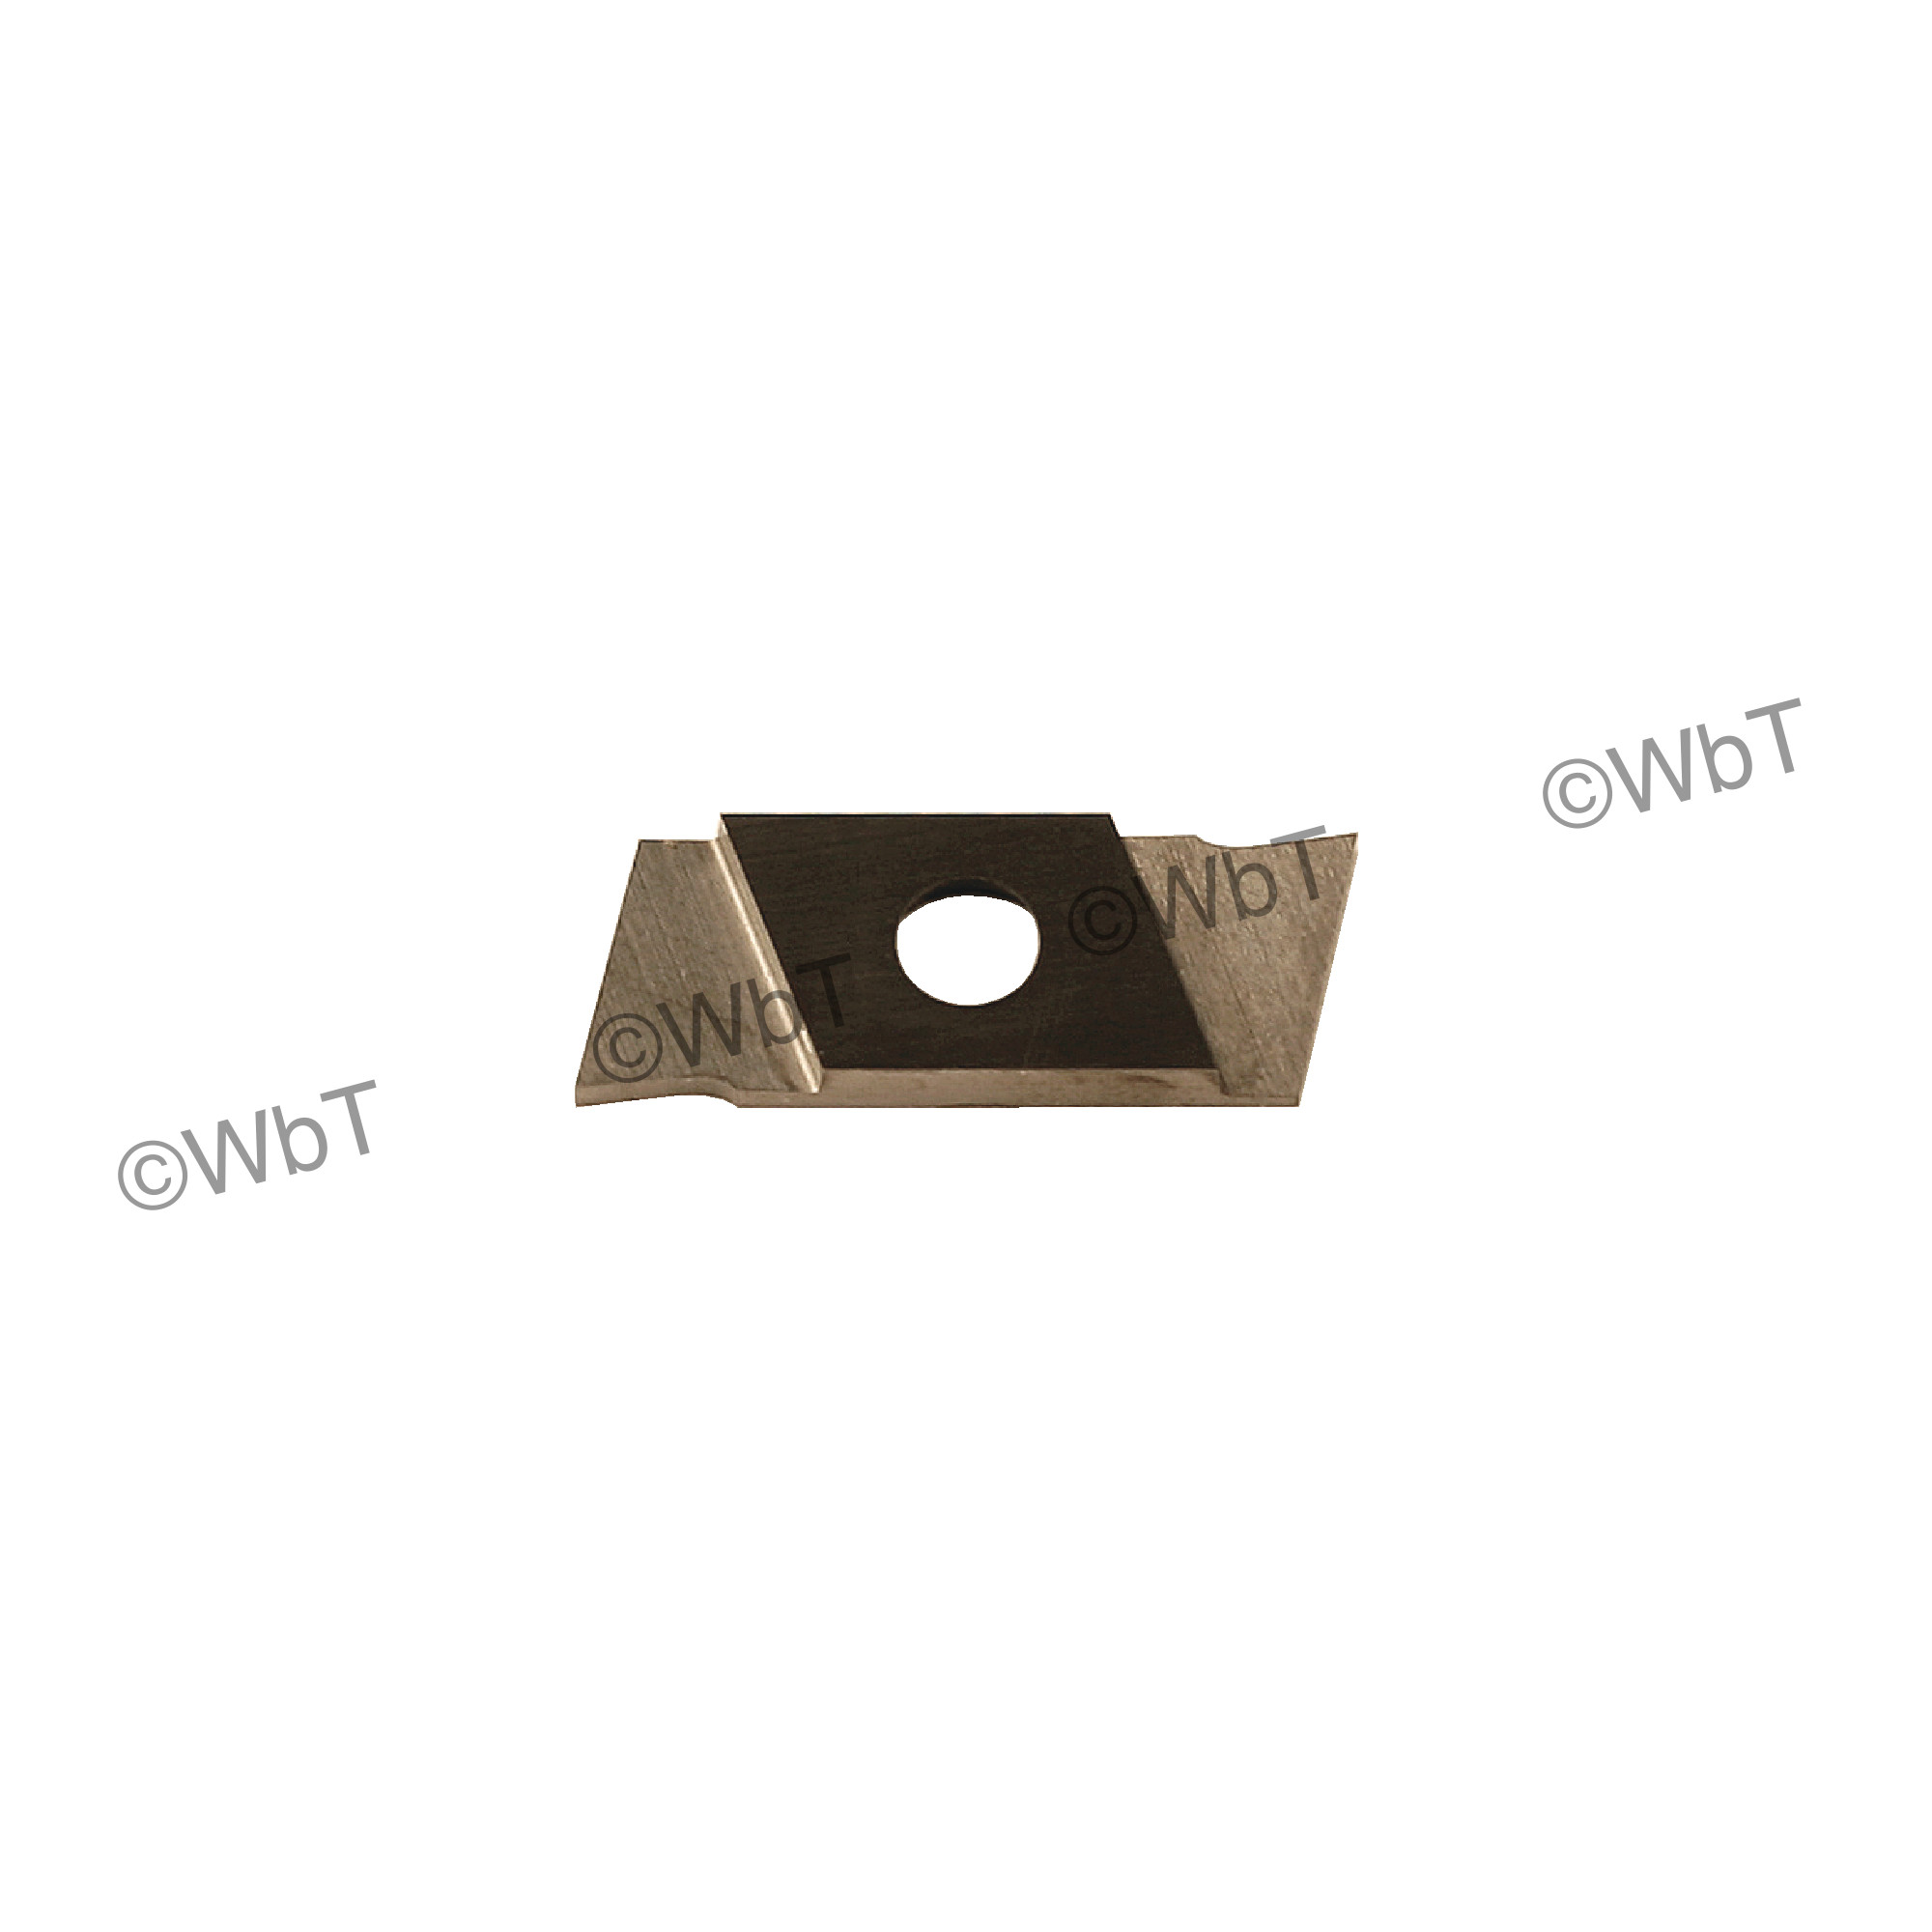 """NIKCOLE - GIE-7-GP-1.0LL C2 / Indexable Carbide Insert for Grooving / 0.039"""" Cutting Width / Left Hand"""